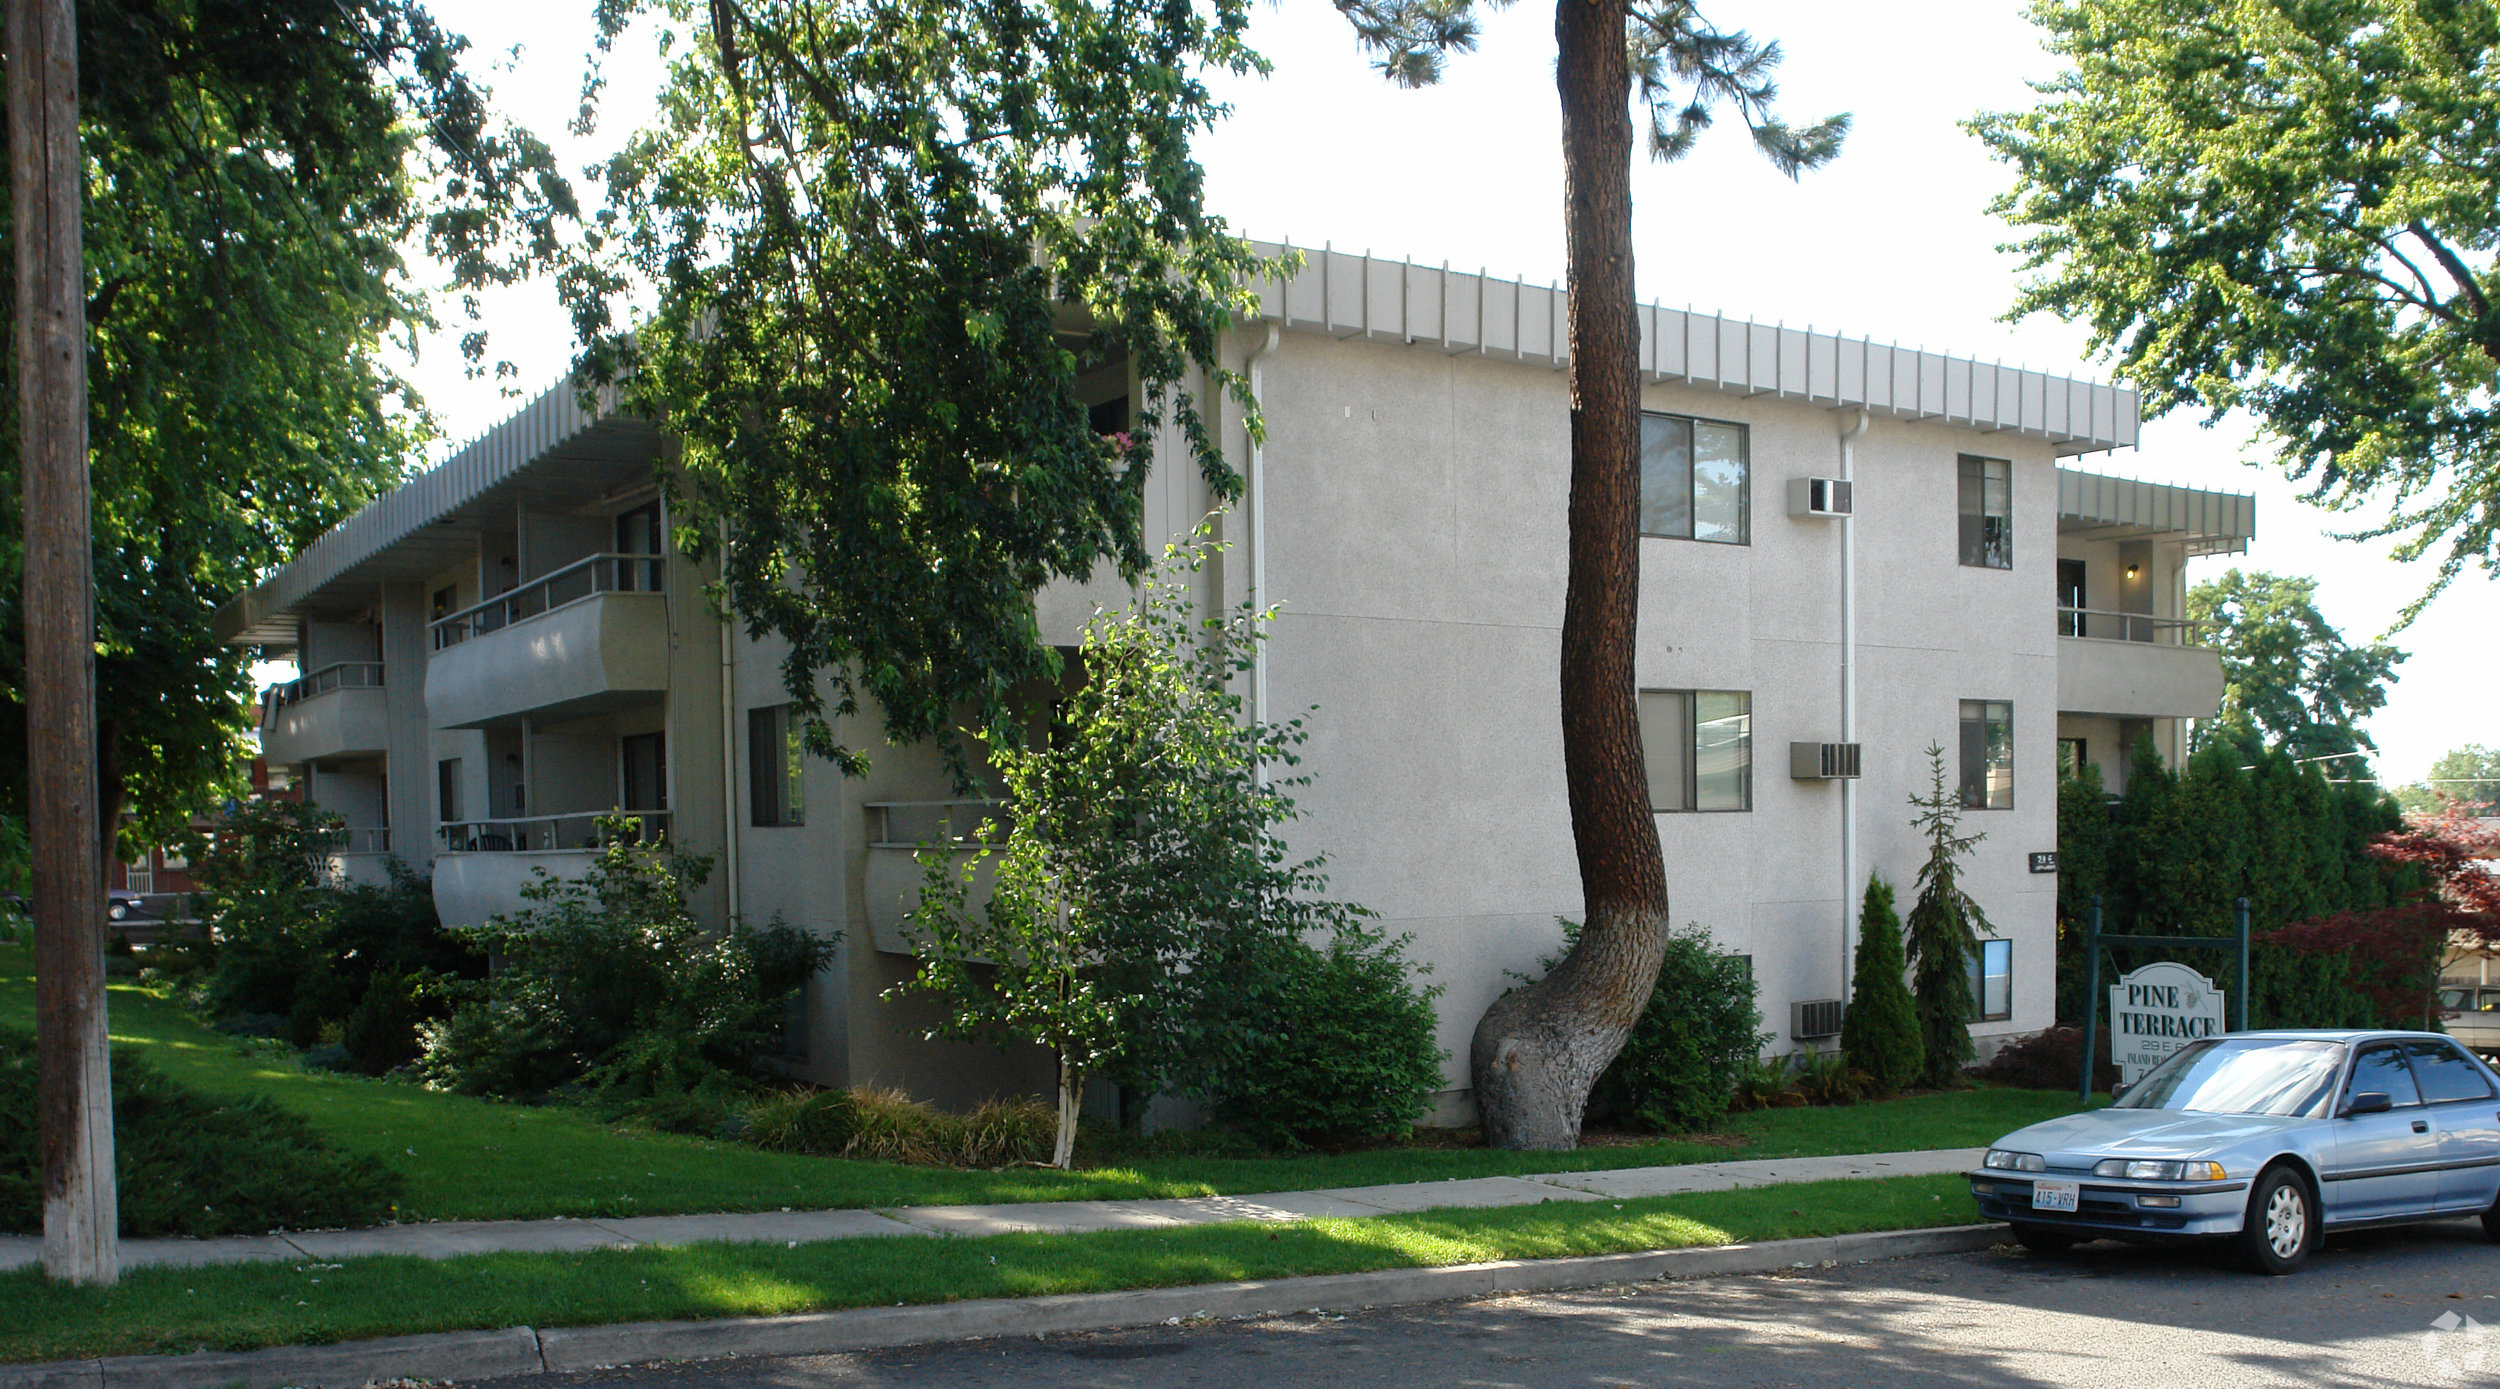 20 Unit Apartment in the South Hill Medical District  Sale: $1,225,000